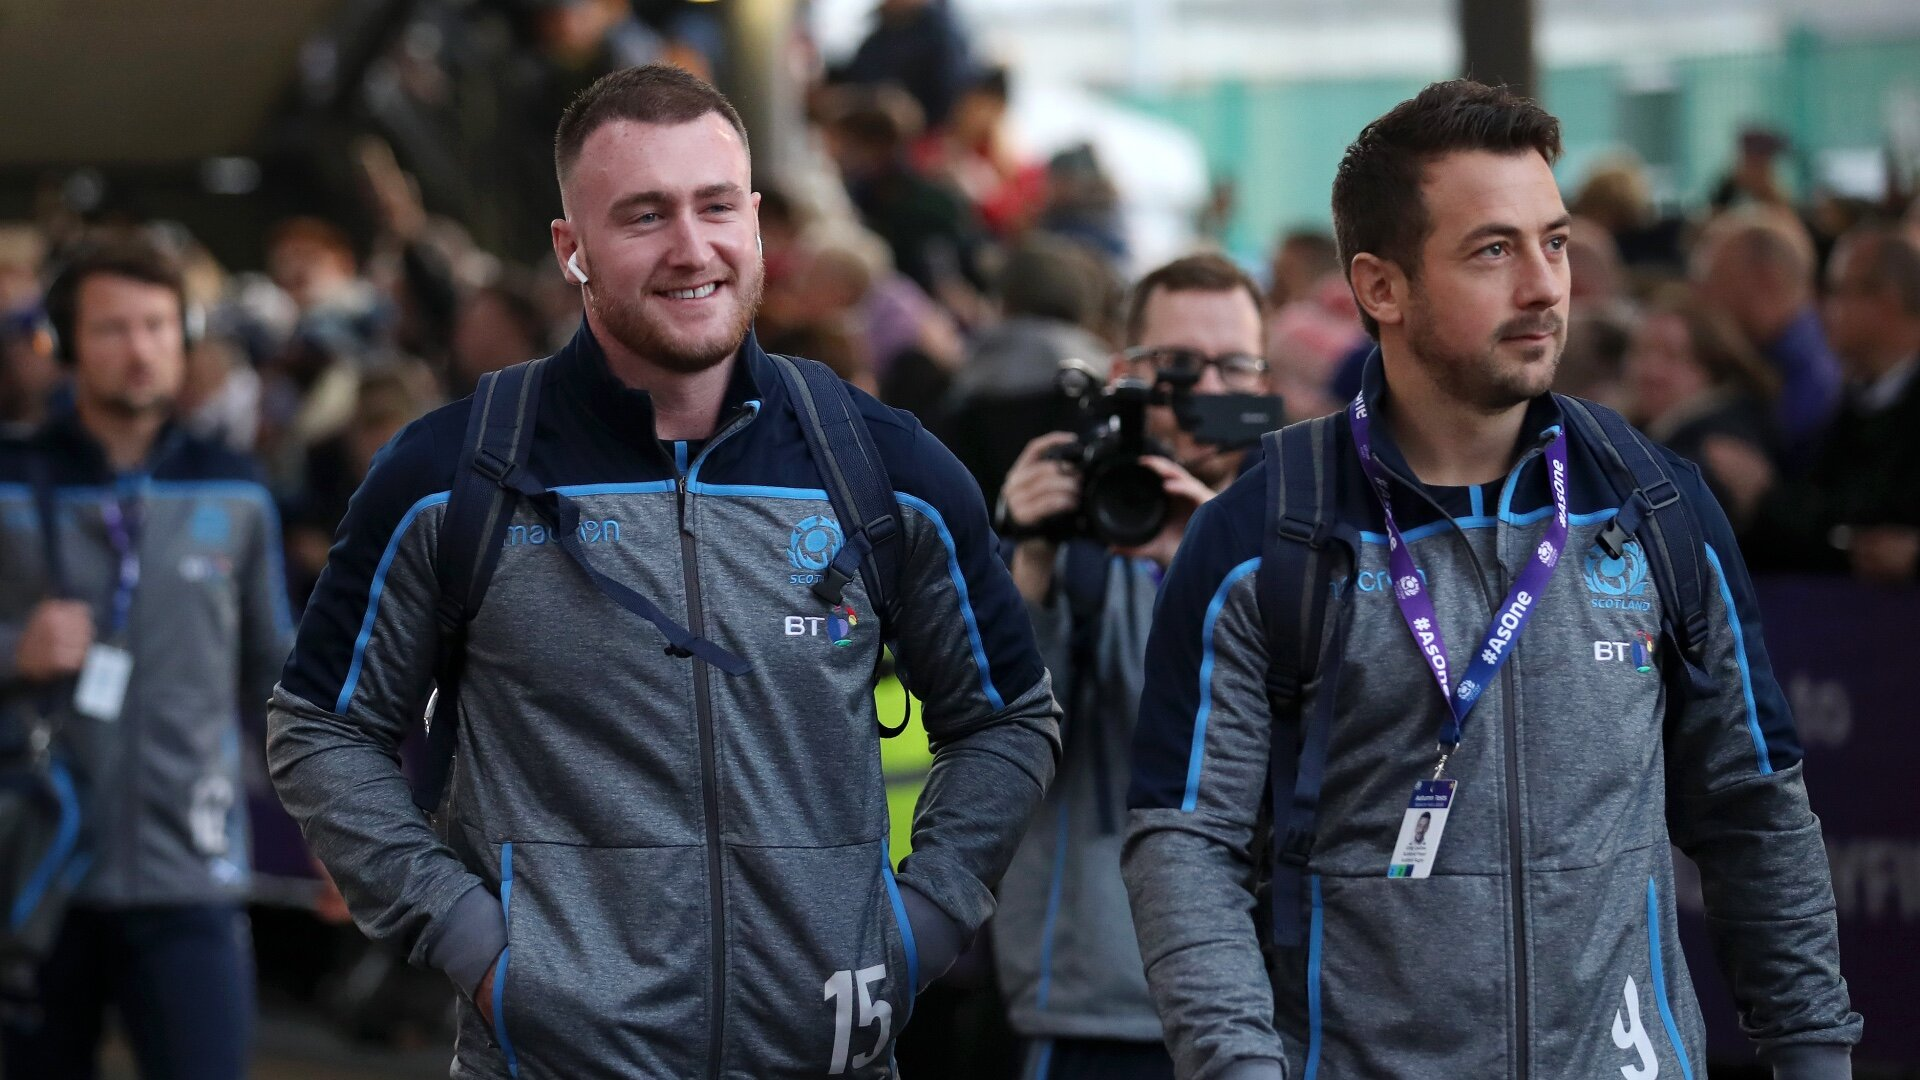 Stuart Hogg leads the praise as Scotland players react to Greig Laidlaw's retirement